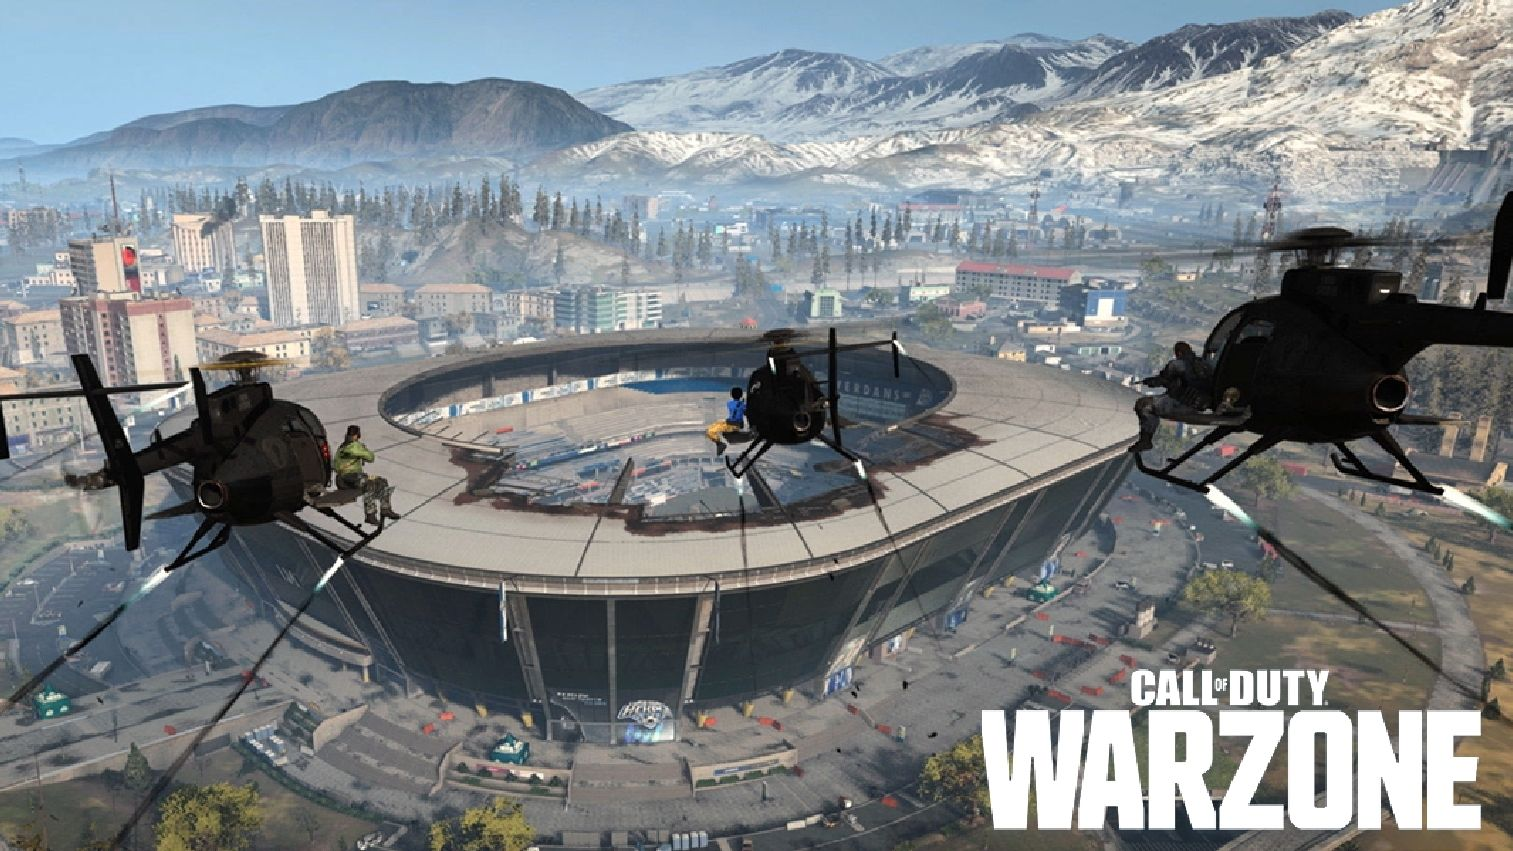 Warzone helicopters at stadium